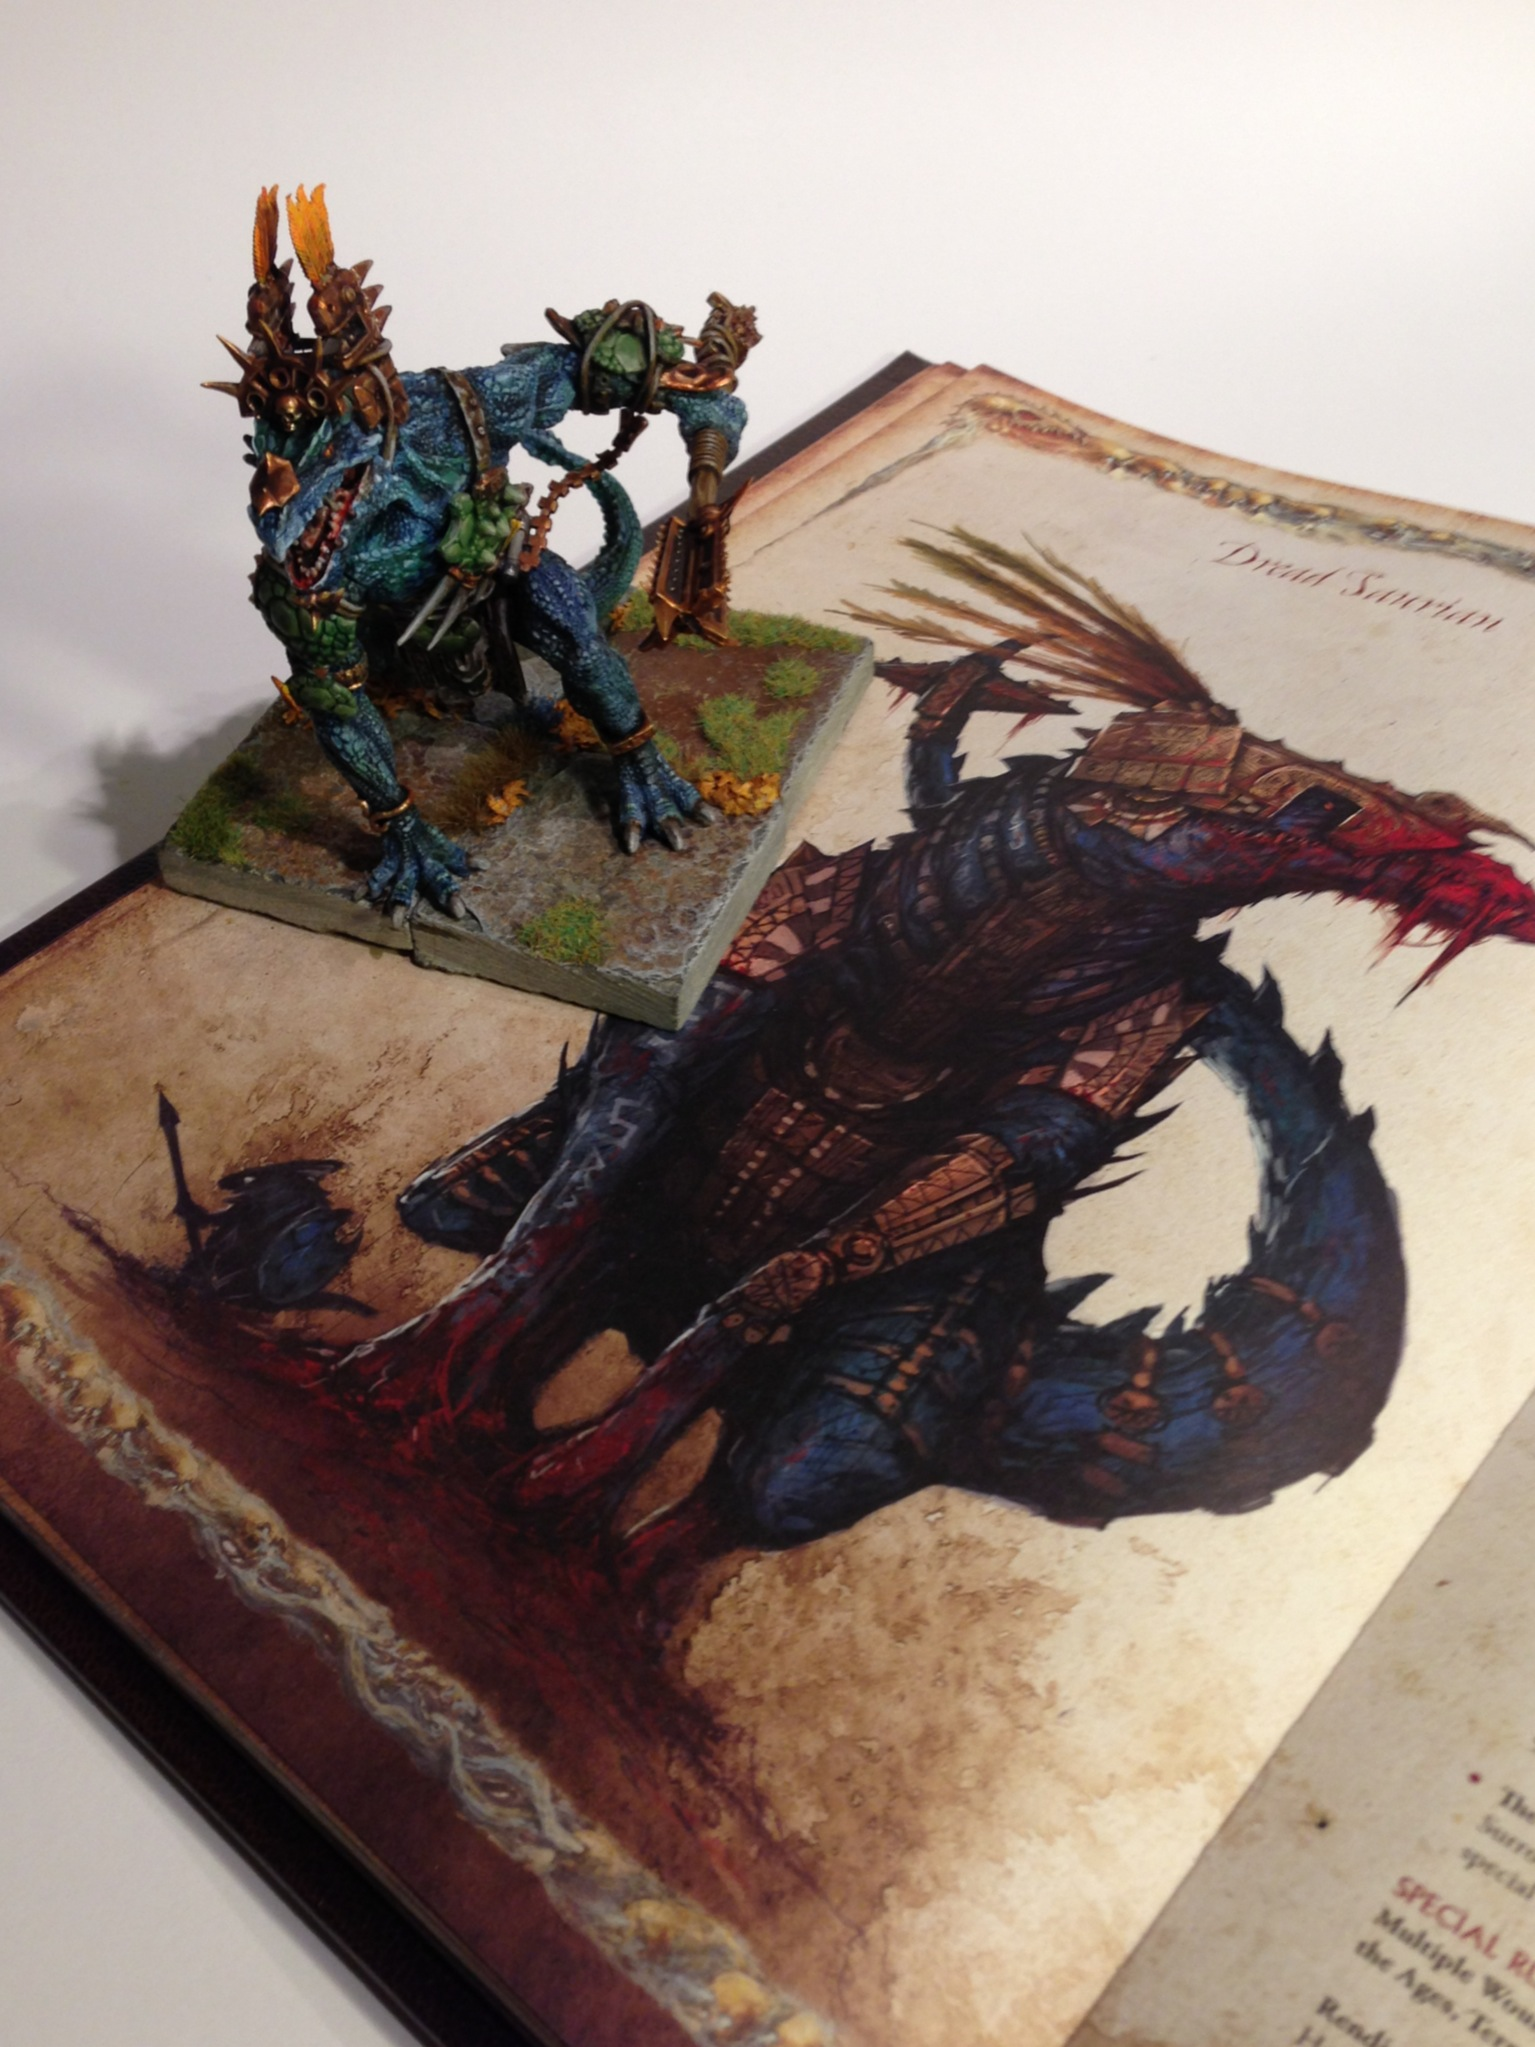 The Dread Saurian Is Drawn The Coming Storm Of Magic Innsmouth Gaming Club